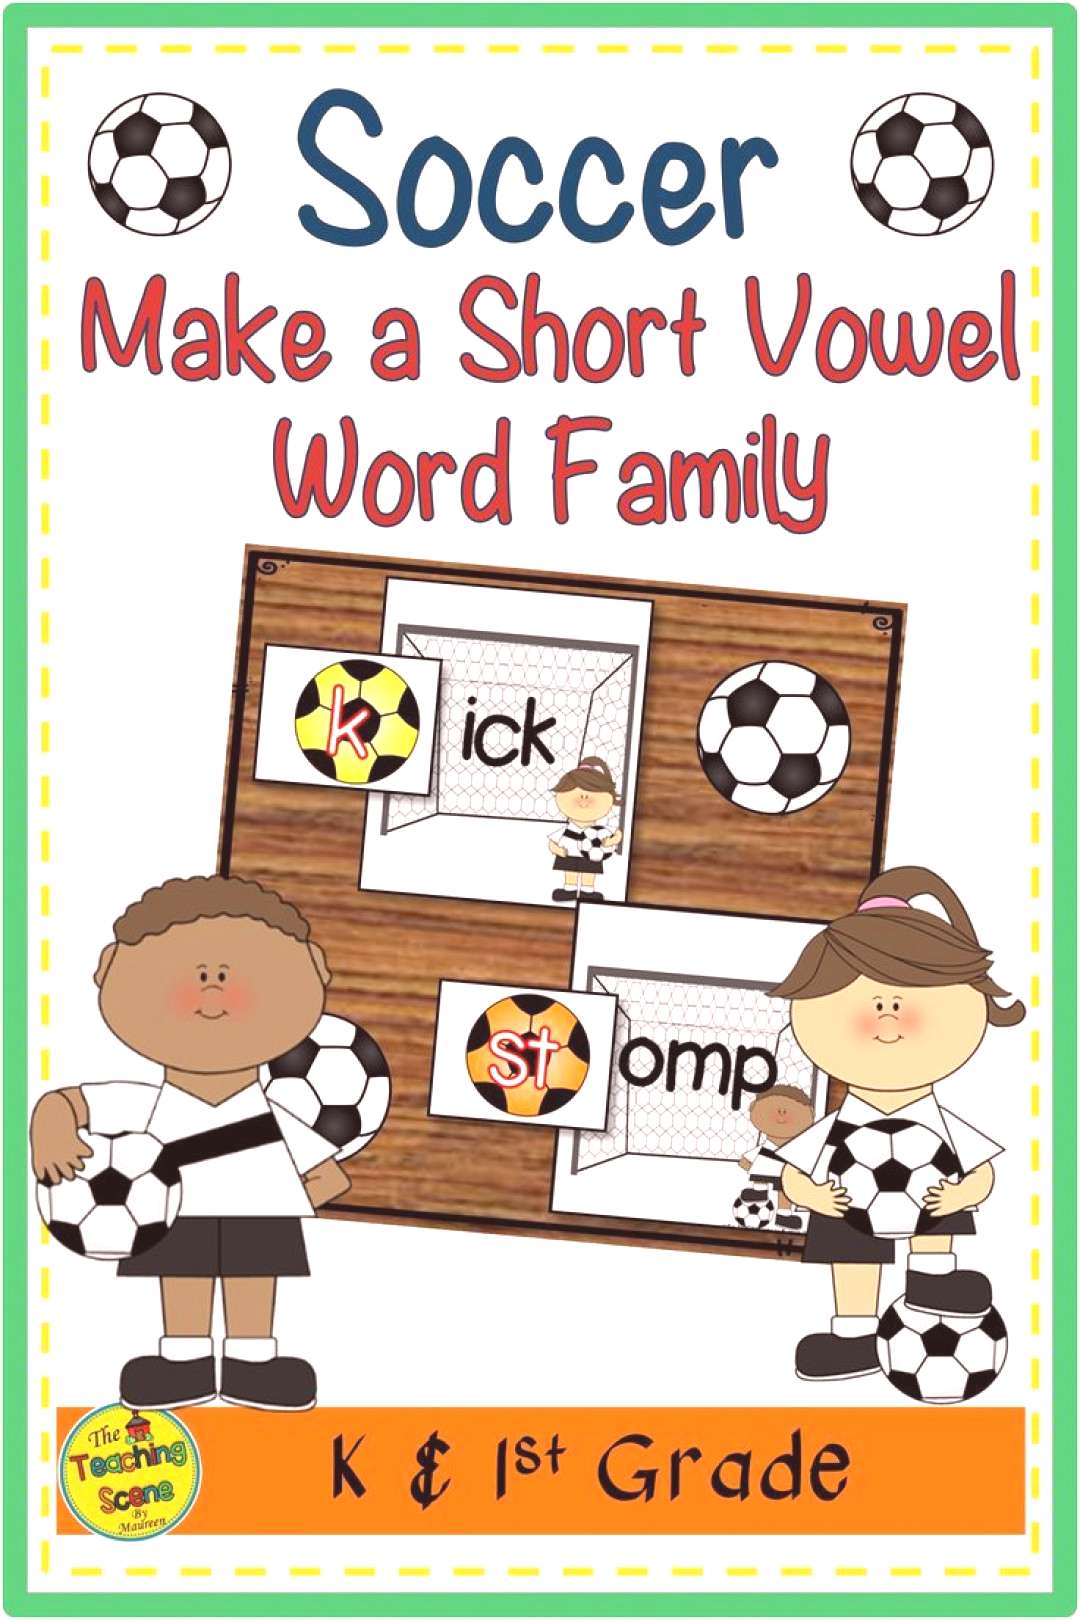 Soccer Themed Make a Short Vowel Word Family Do you need a soccer phonics center or activity? This